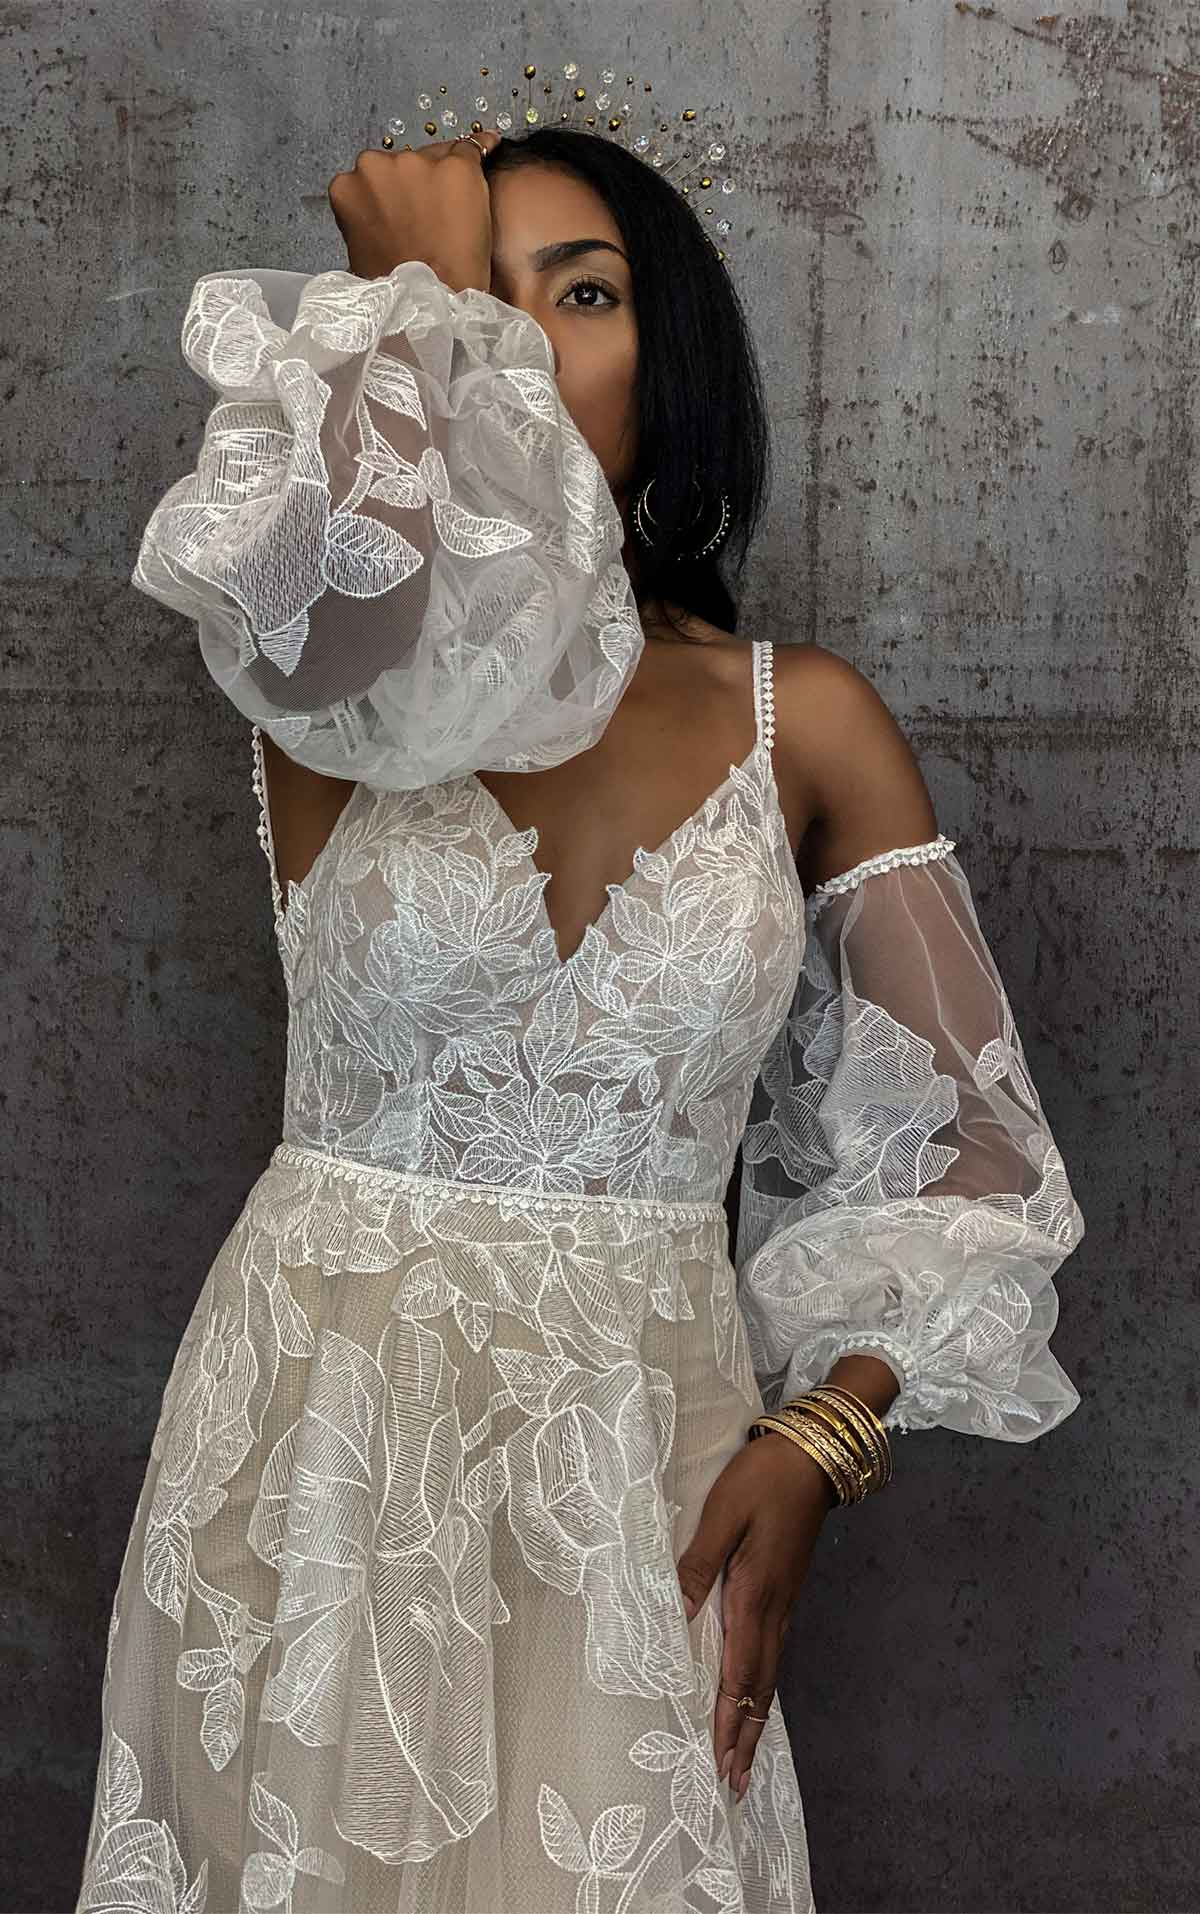 Aspen Dreamy Boho Wedding Dress with Open Back and Botanical Lace Details by All Who Wander